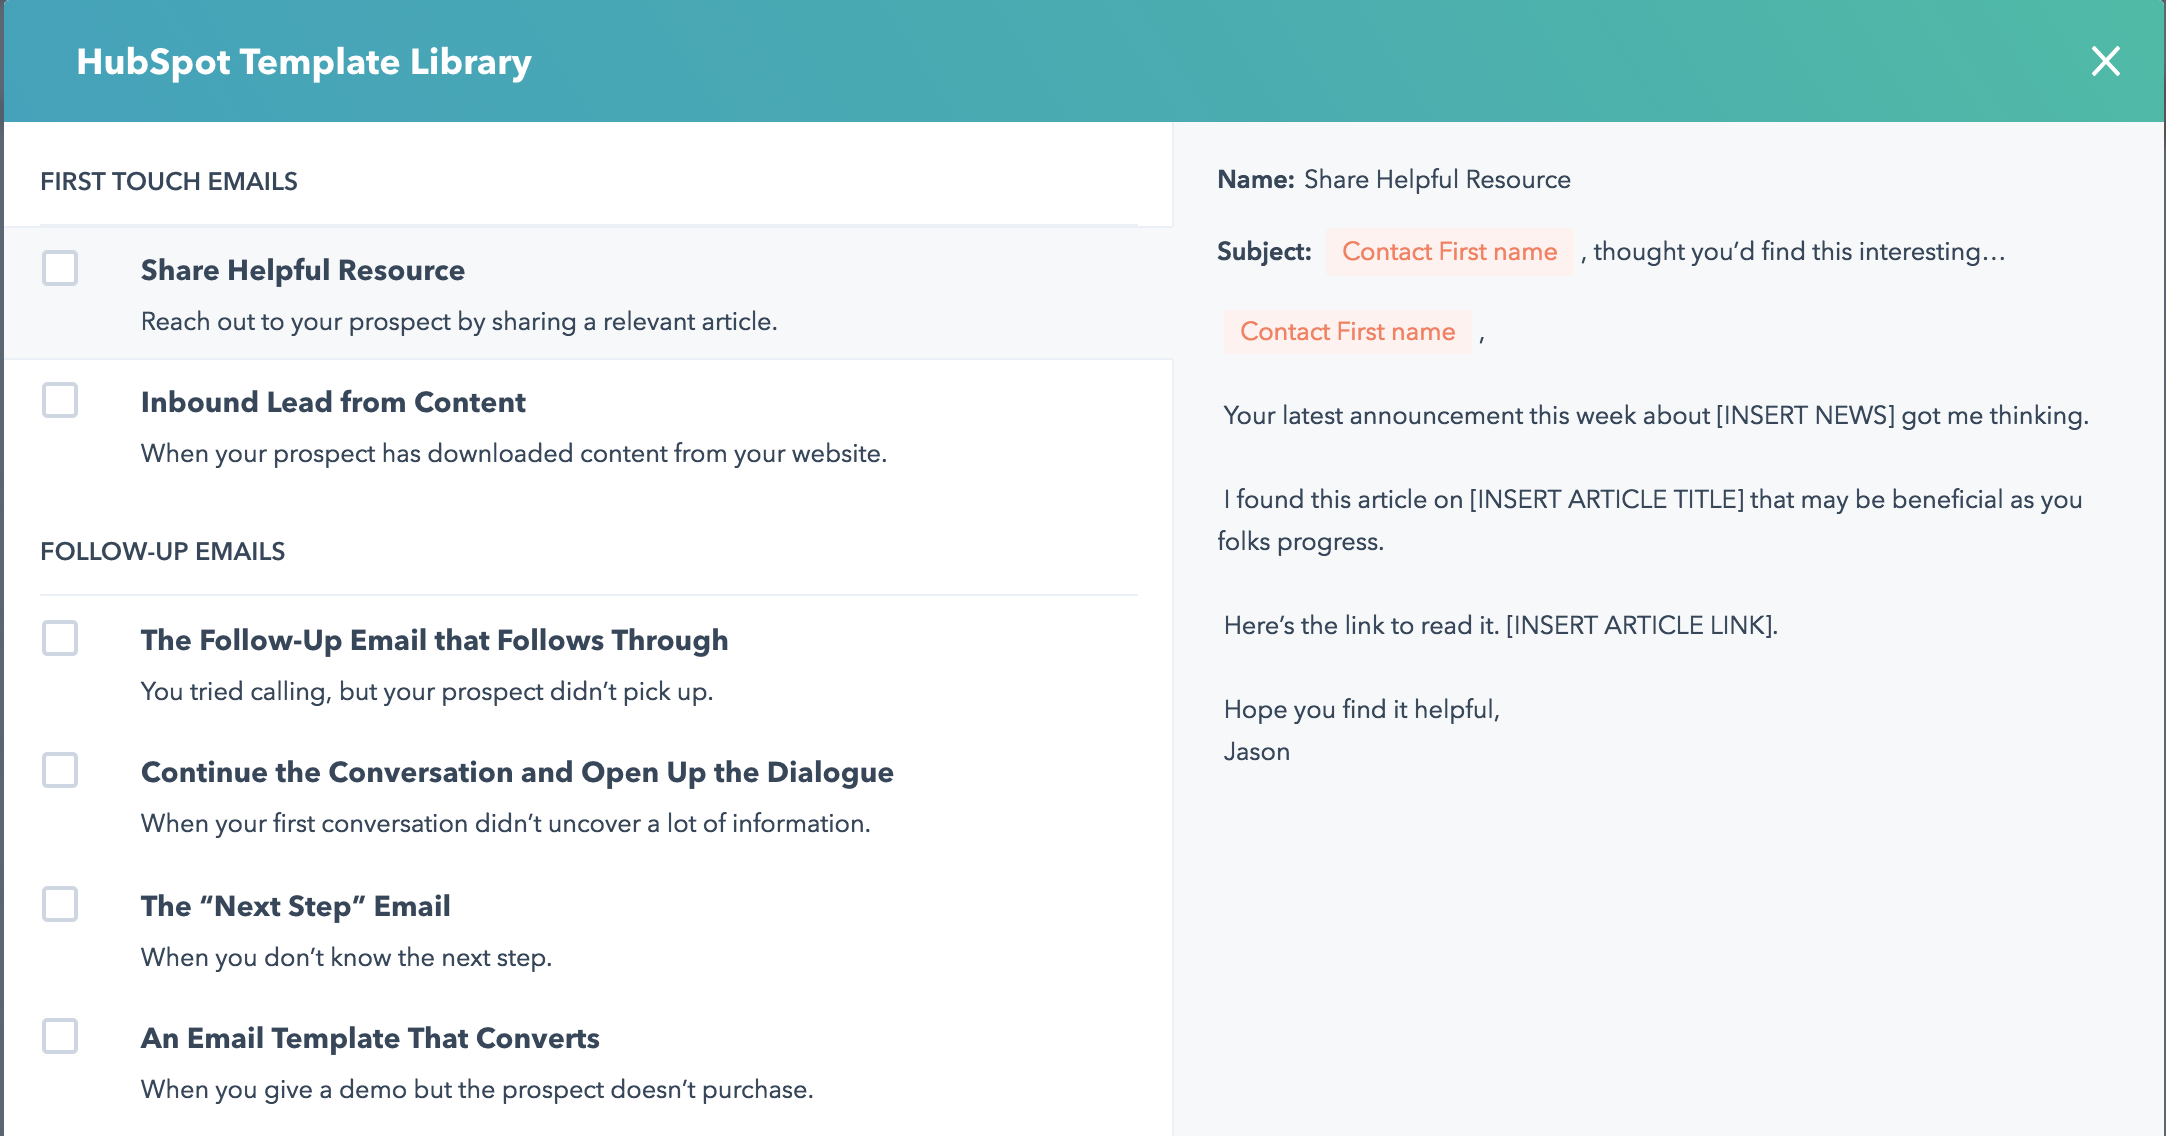 HubSpot Template Library - Sales Templates